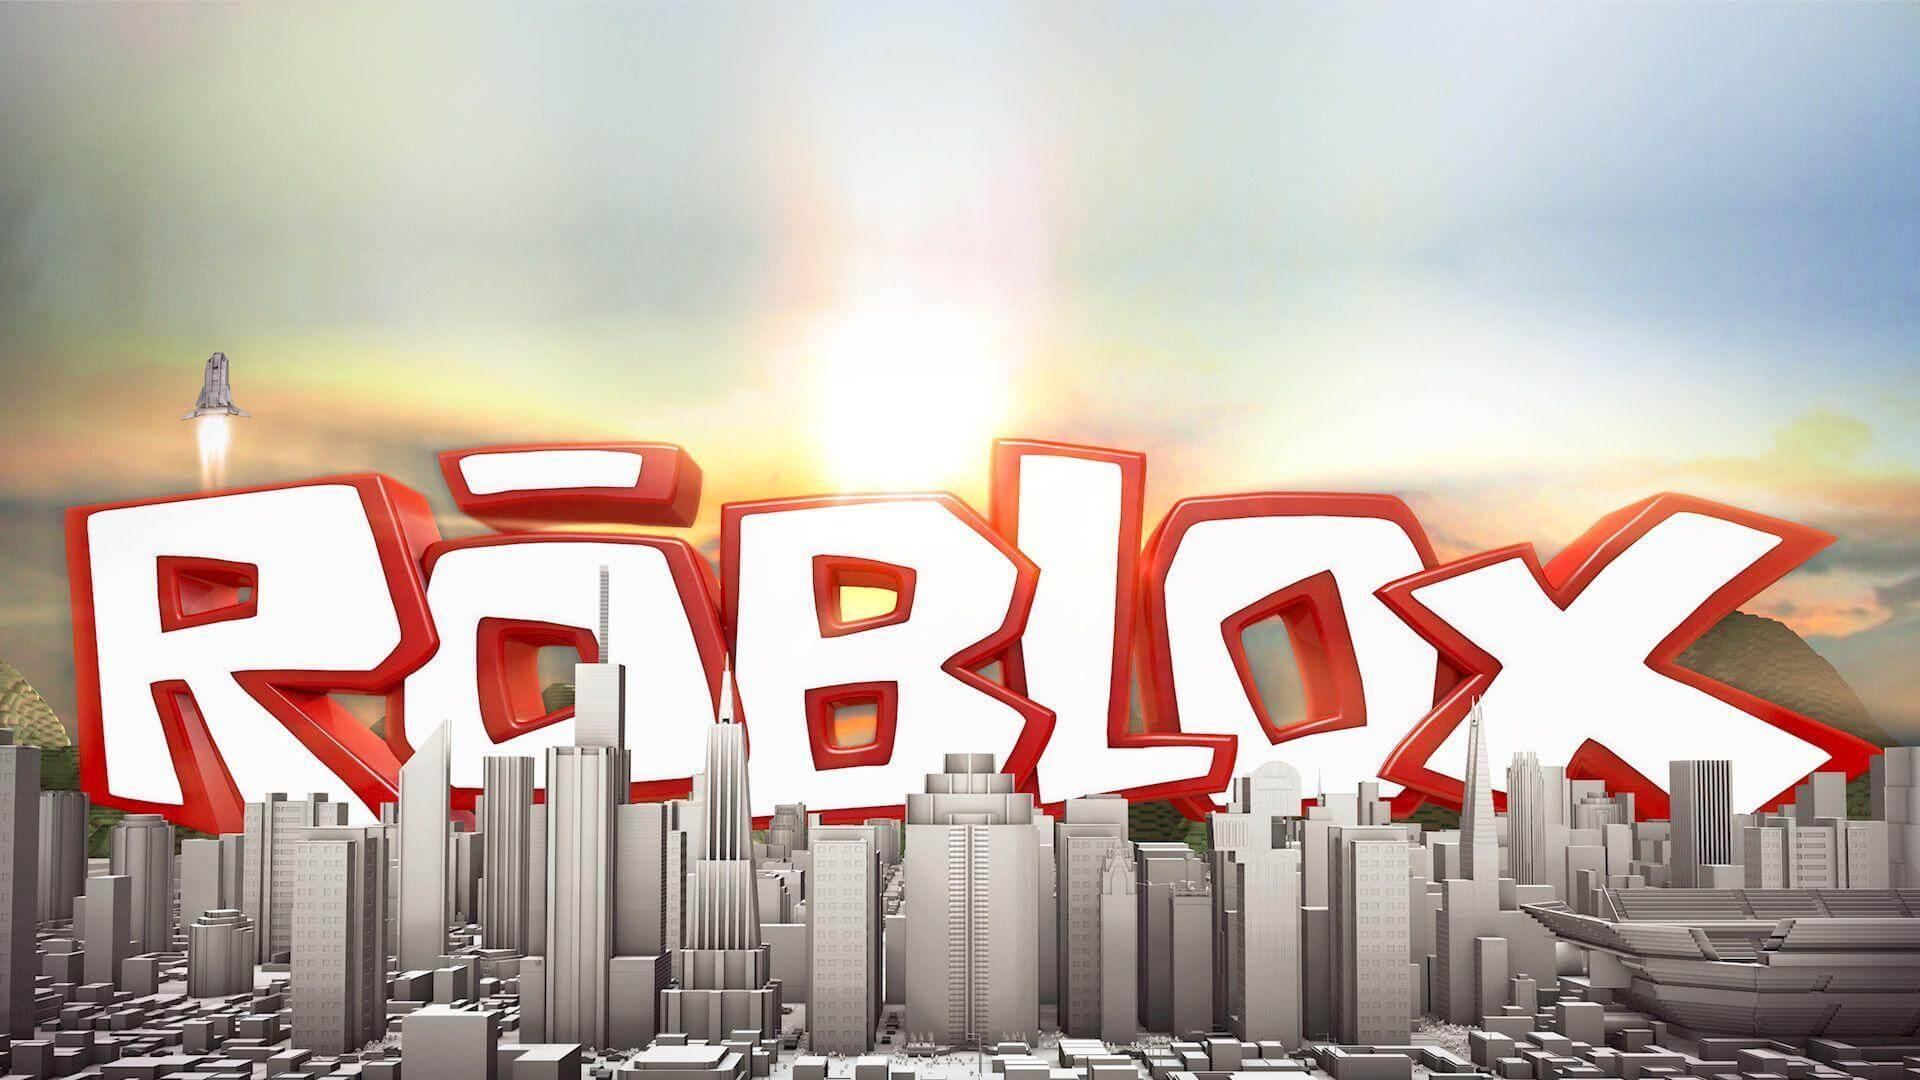 Roblox Hack Wallpaper Wallpapers Rblx Rblx Game Free Wallpapers For Android Apk Download